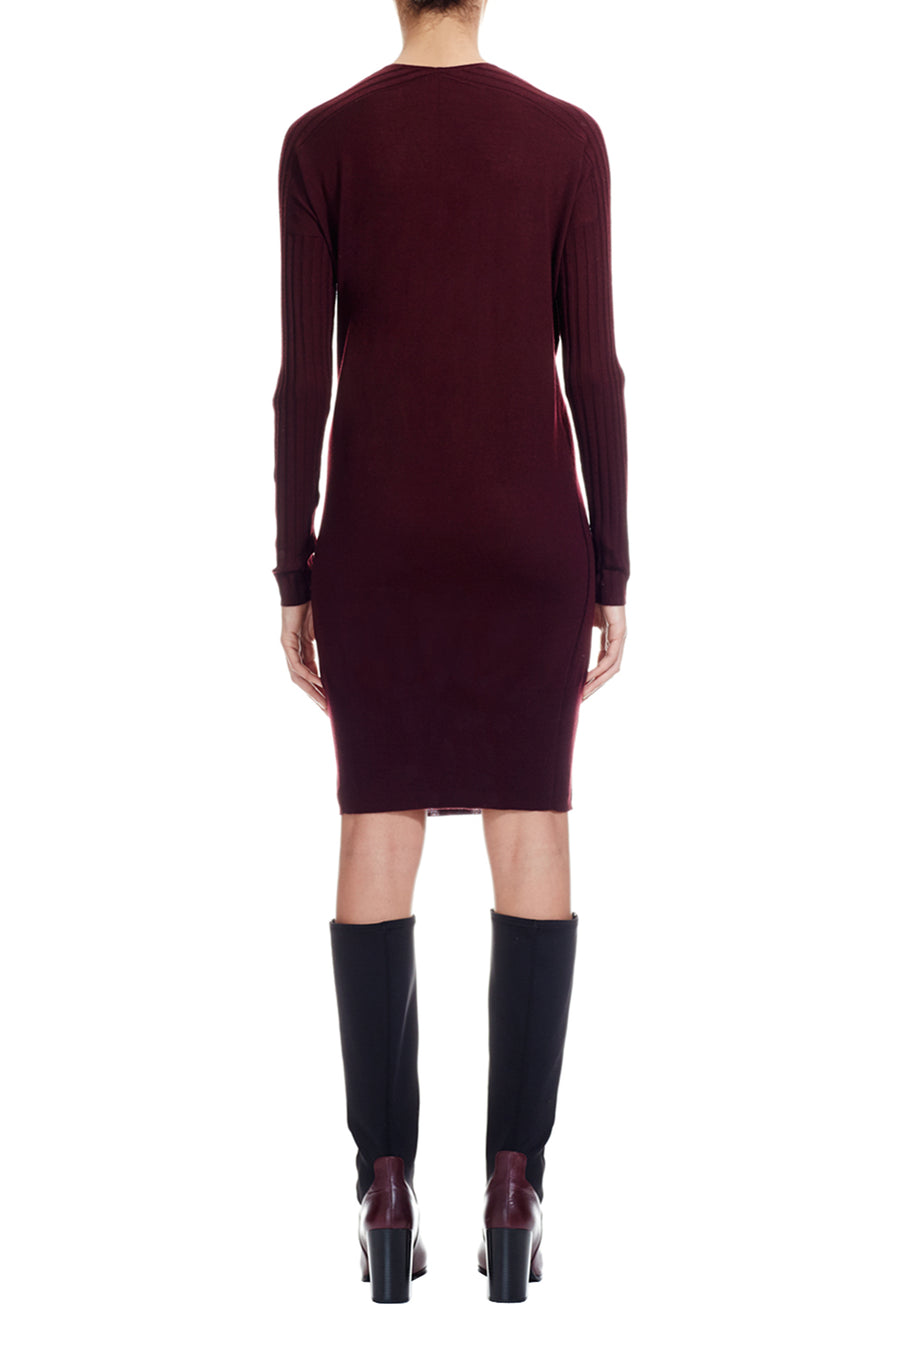 Oxblood The Leyden Dress